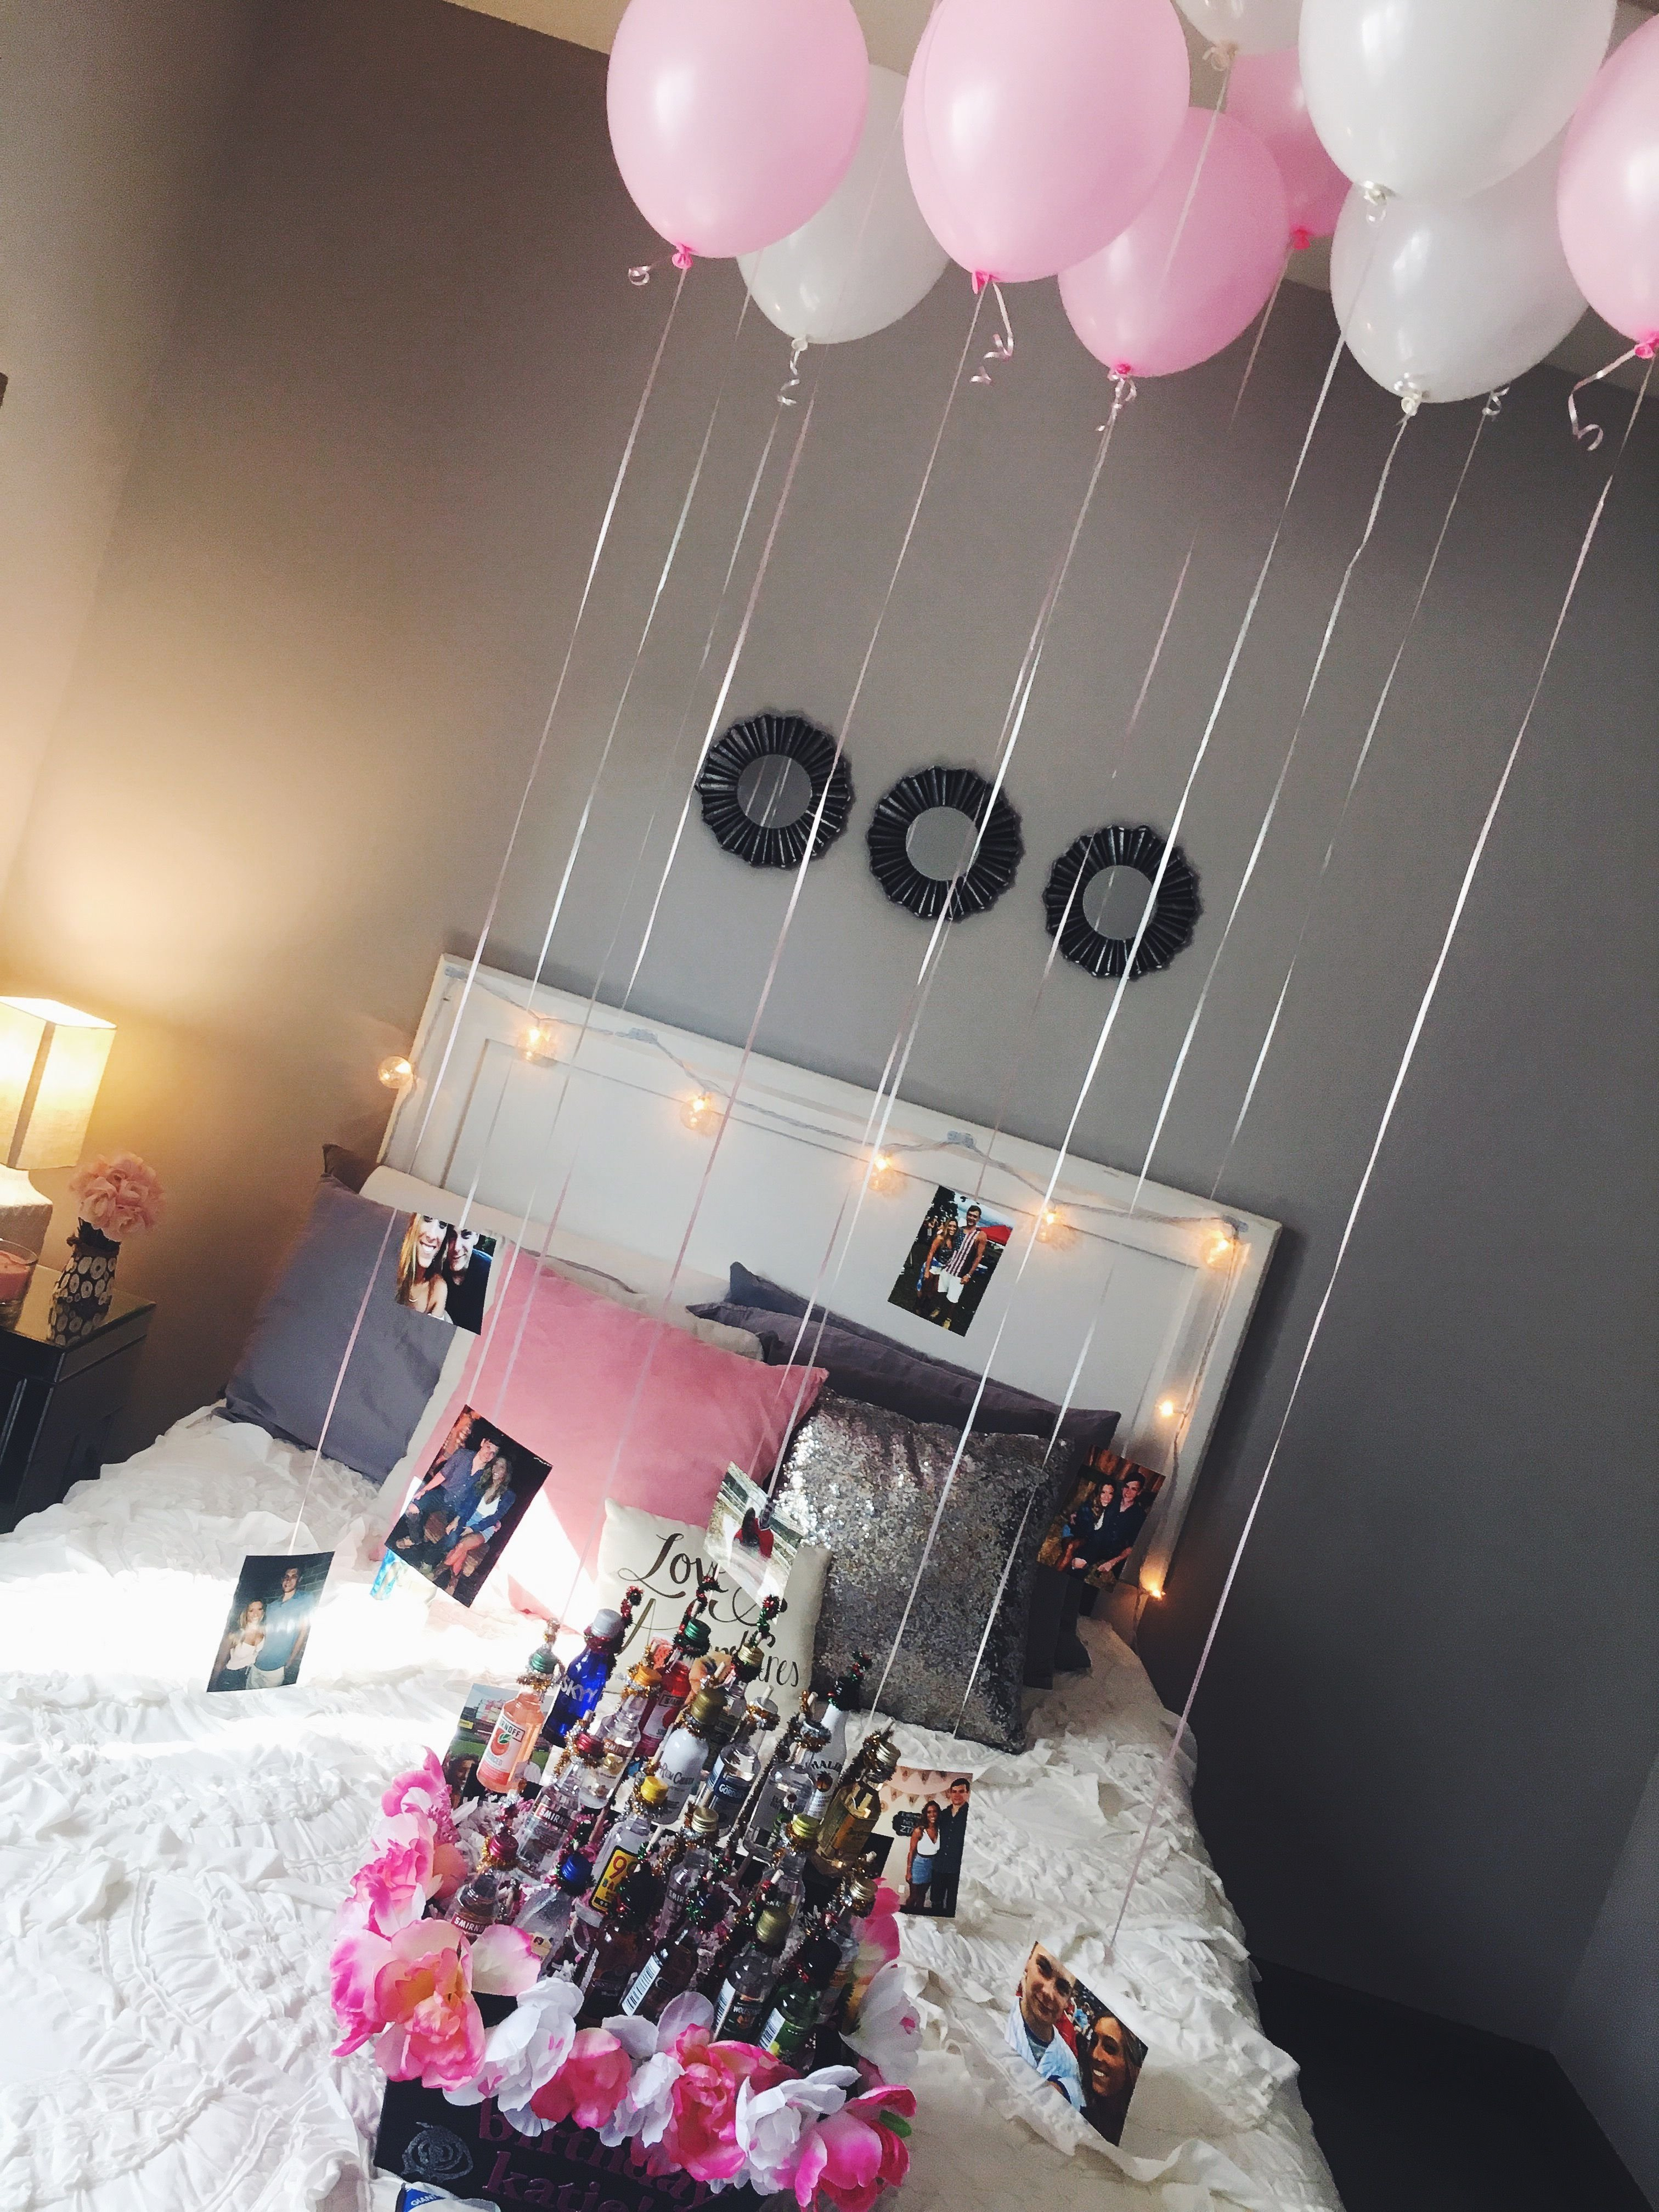 10 Perfect Good Birthday Ideas For Girlfriend Easy And Cute Decorations A Friend Or Girlfriends